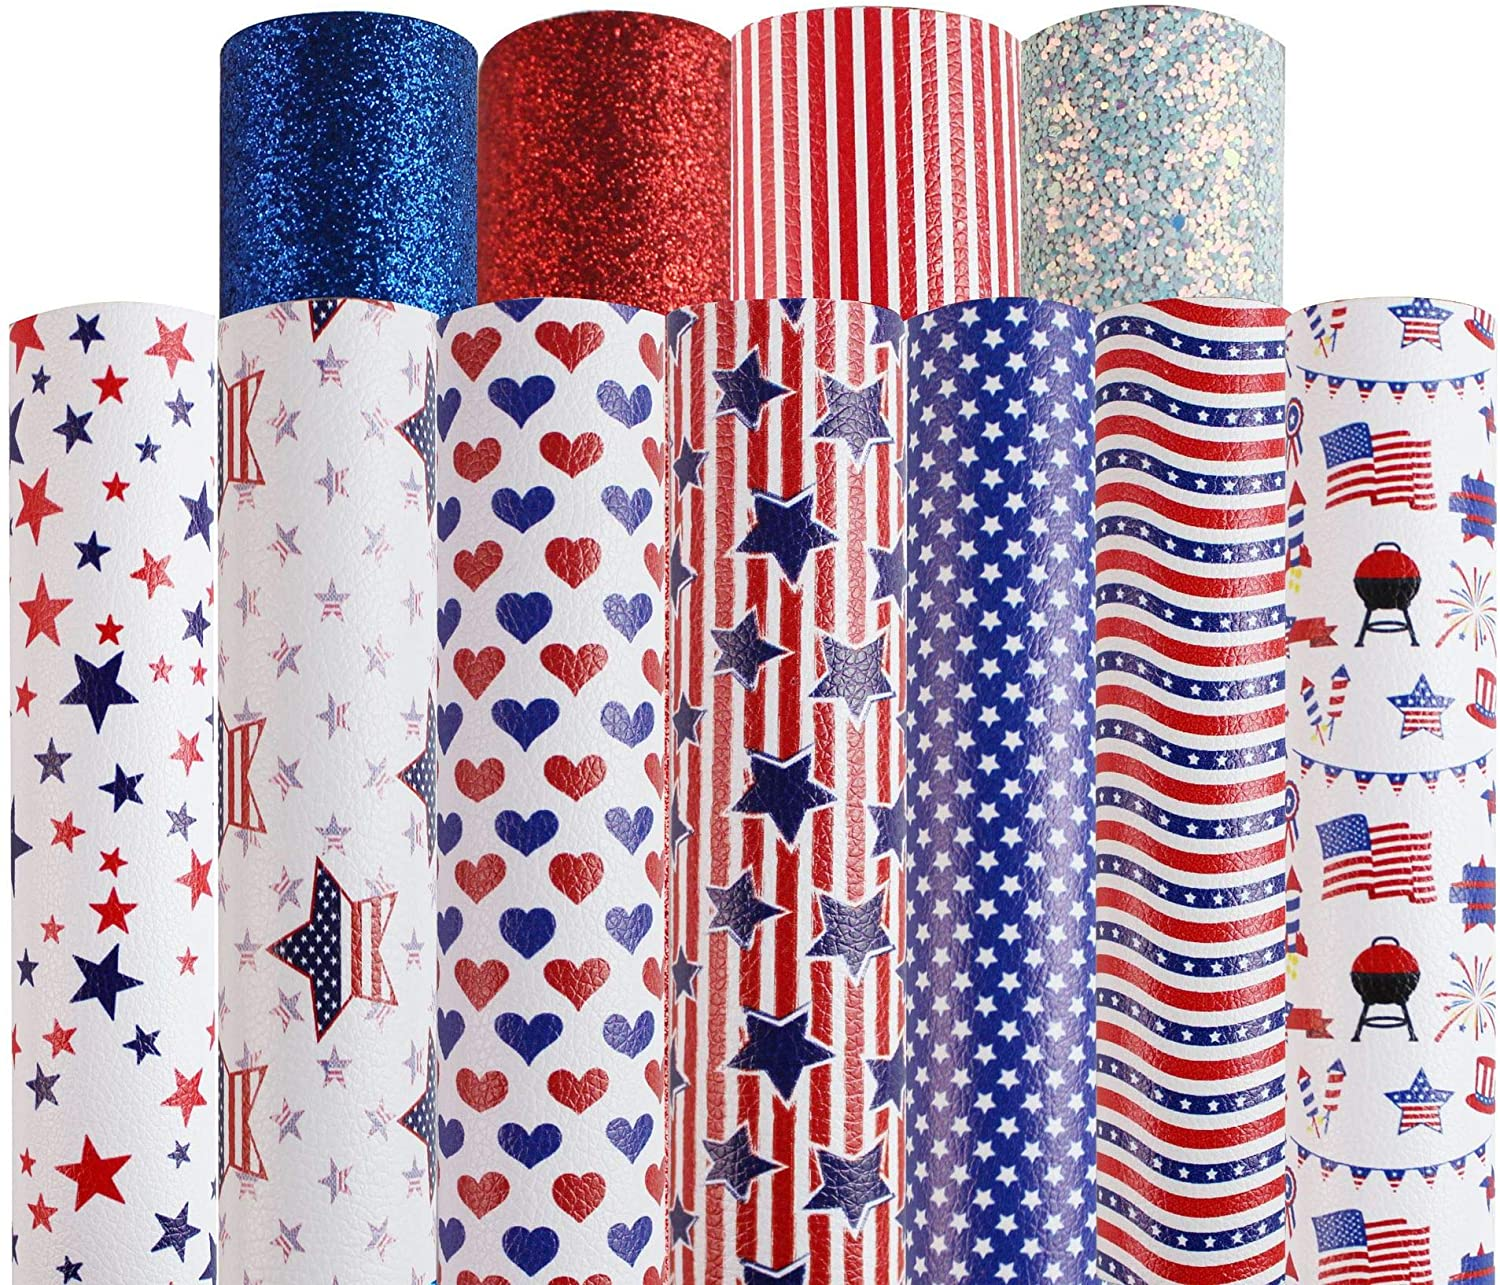 Faux Leather Fabric Sheet Set American Flag Elements Glitter Shiny Faux Leather Sheets Assorted Litchi Sequins Synthetic Leather Sheets for DIY Crafts Sewing Making Bows Earrings Hair Clips Supplies